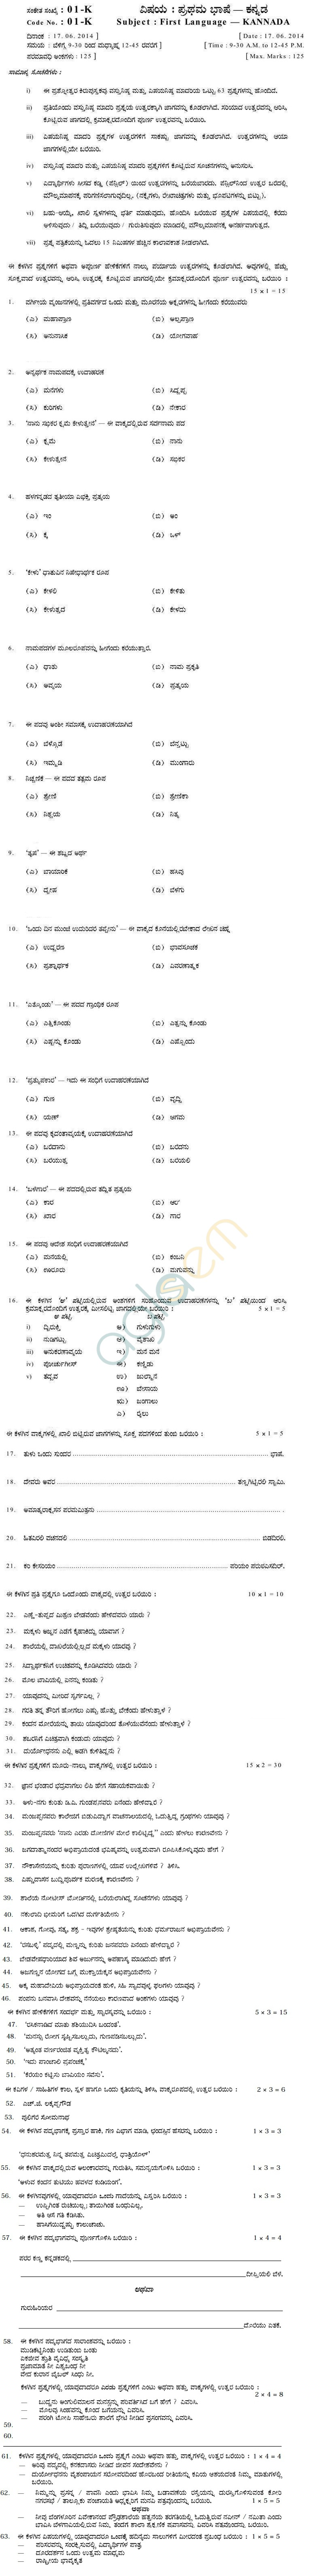 Karnataka SSLC Solved Question Paper June 2014 - Kannada